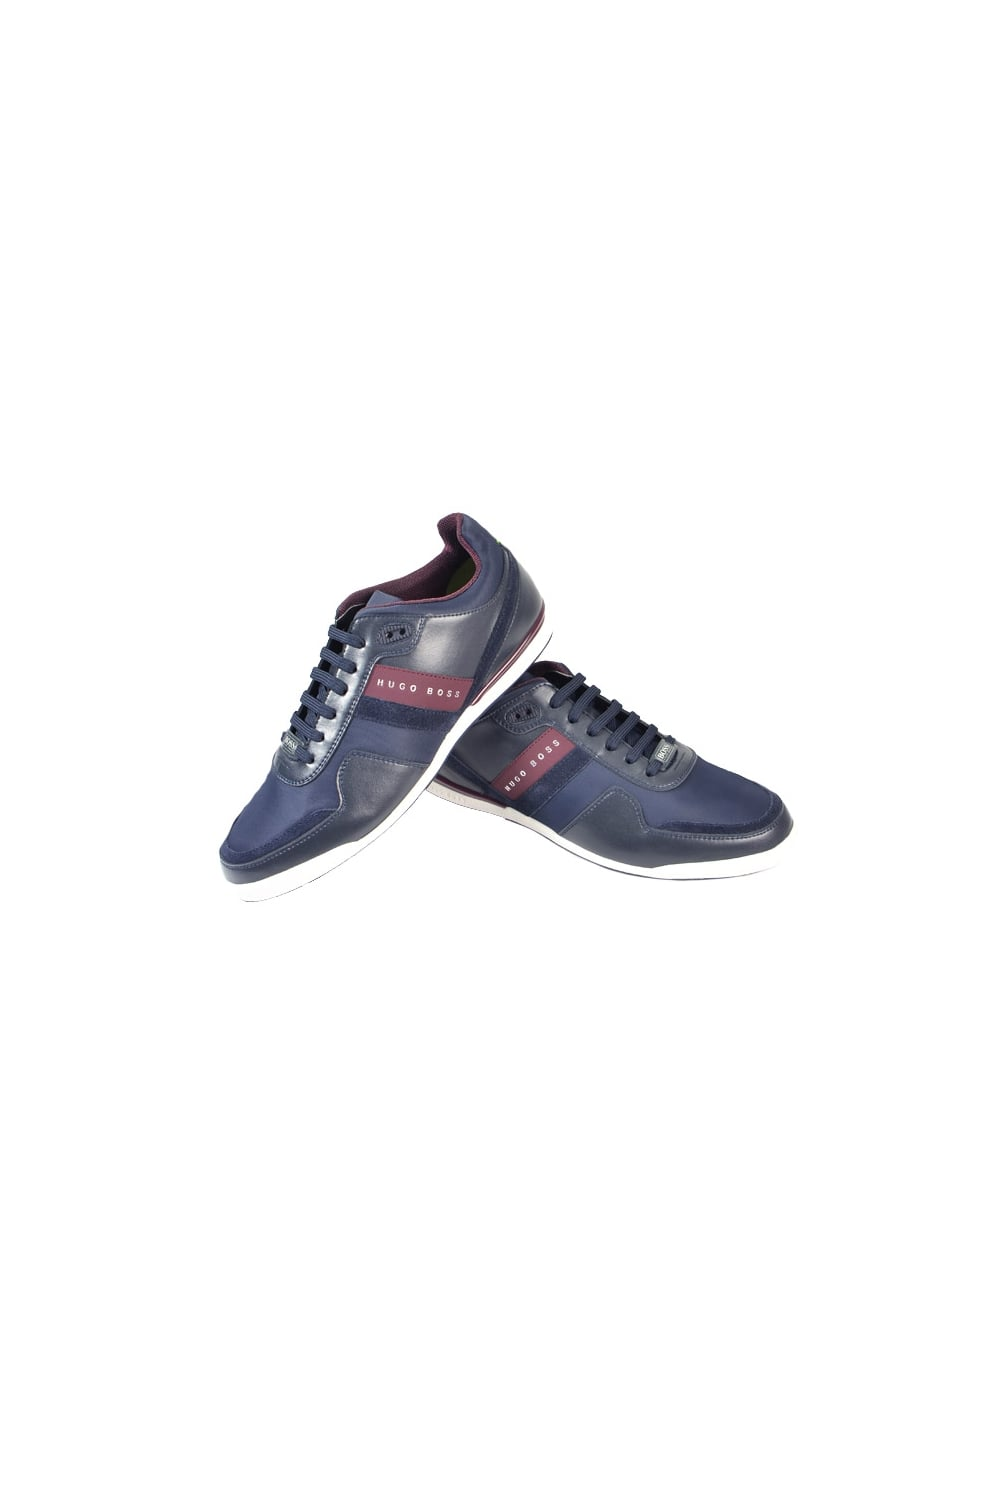 look out for new images of new & pre-owned designer Arkansas lowp Trainers Navy Blue